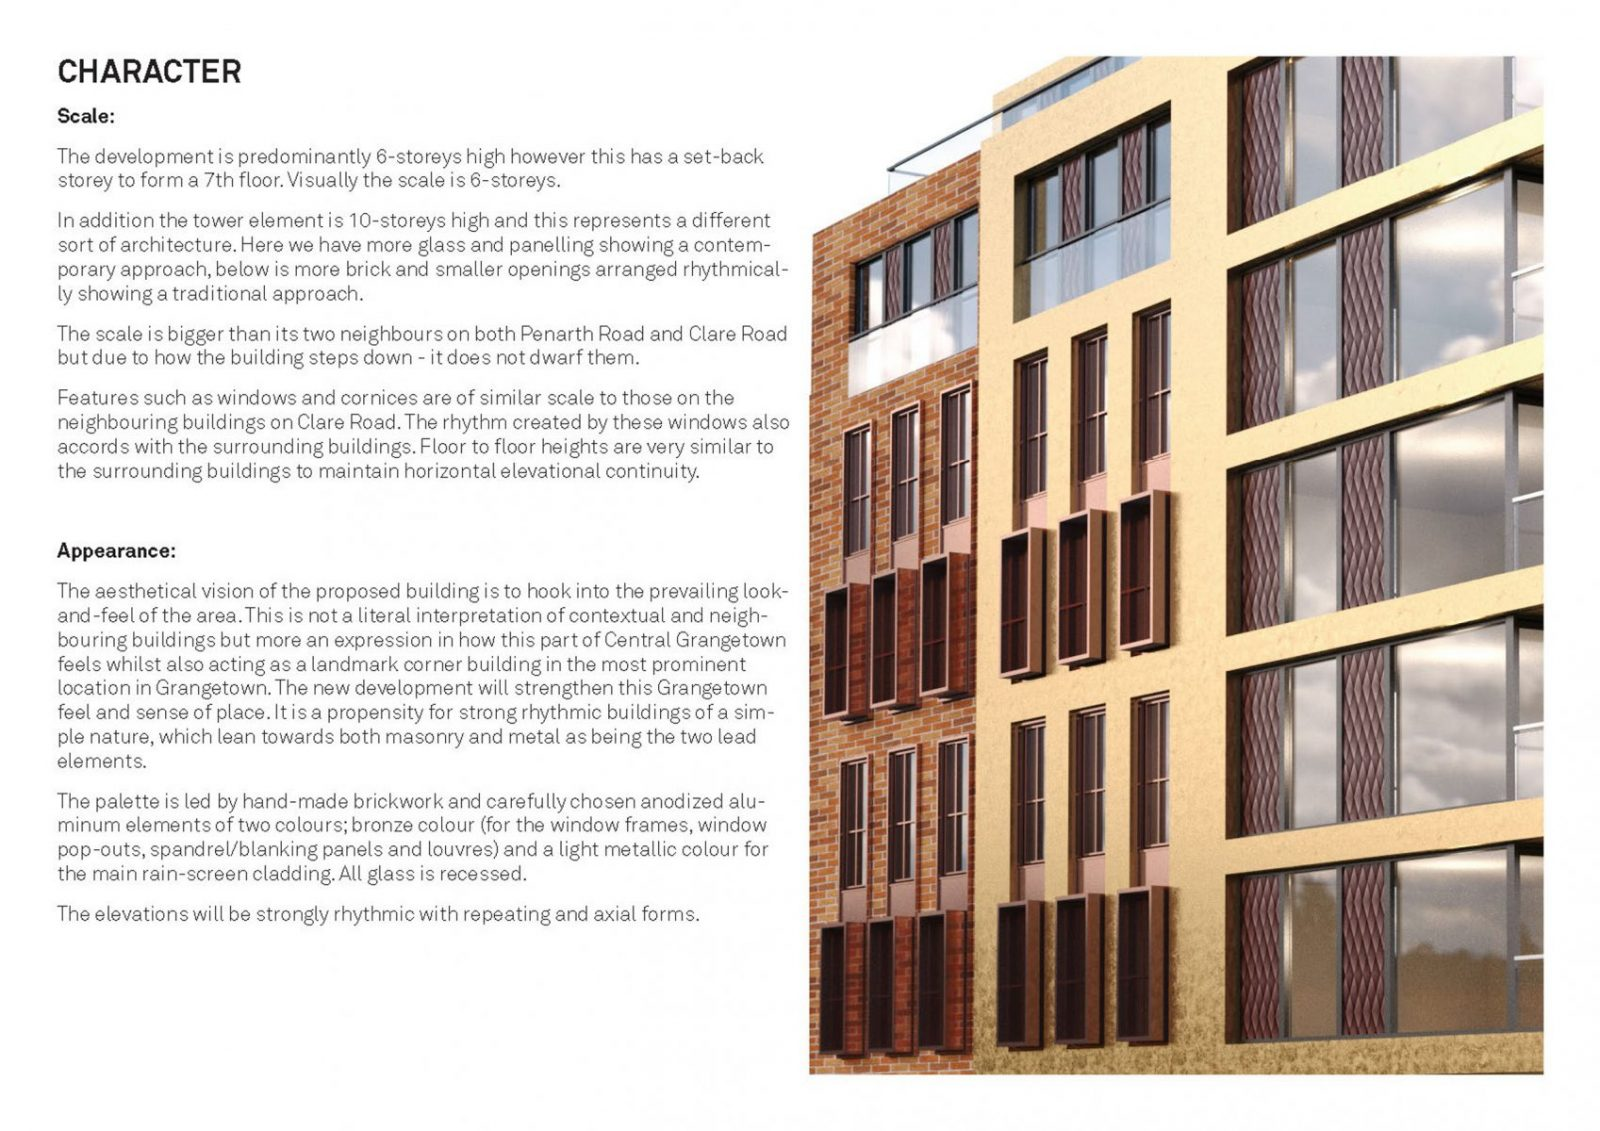 penarth road arpartments cardiff architects jersey 3